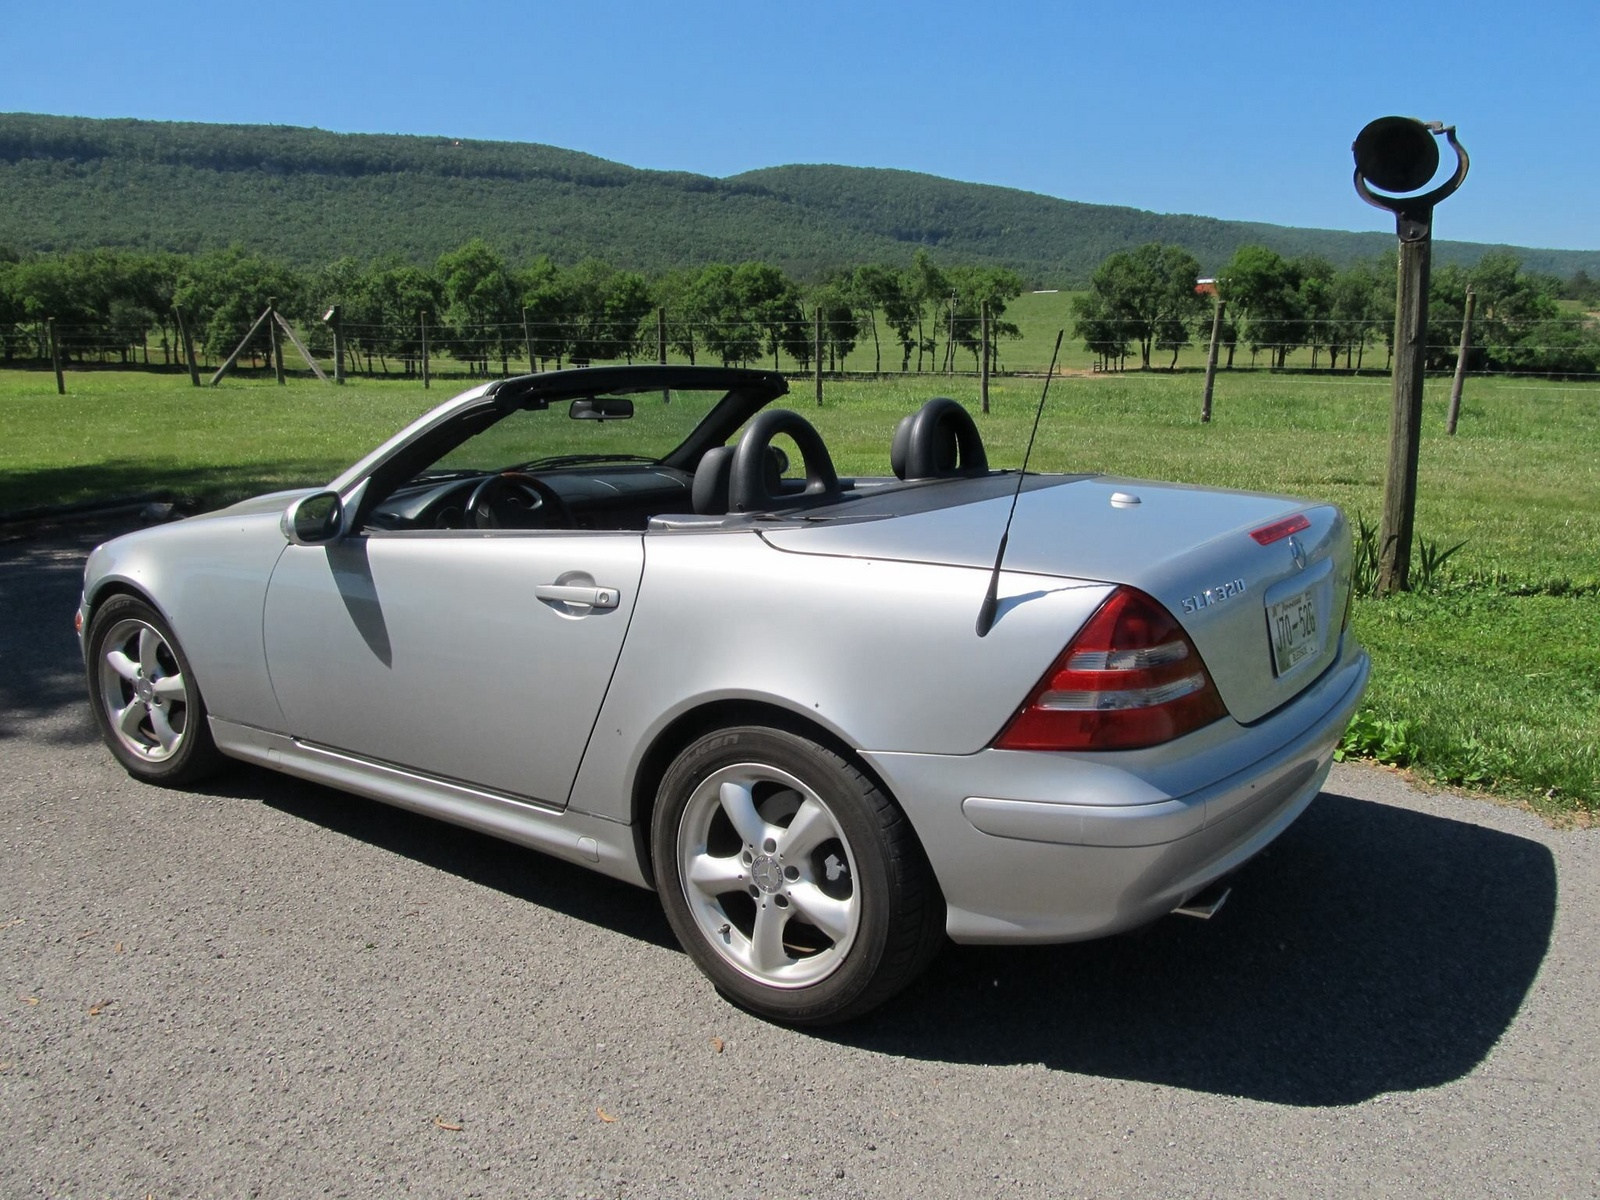 2002 mercedes benz slk class pictures cargurus for 2002 mercedes benz convertible